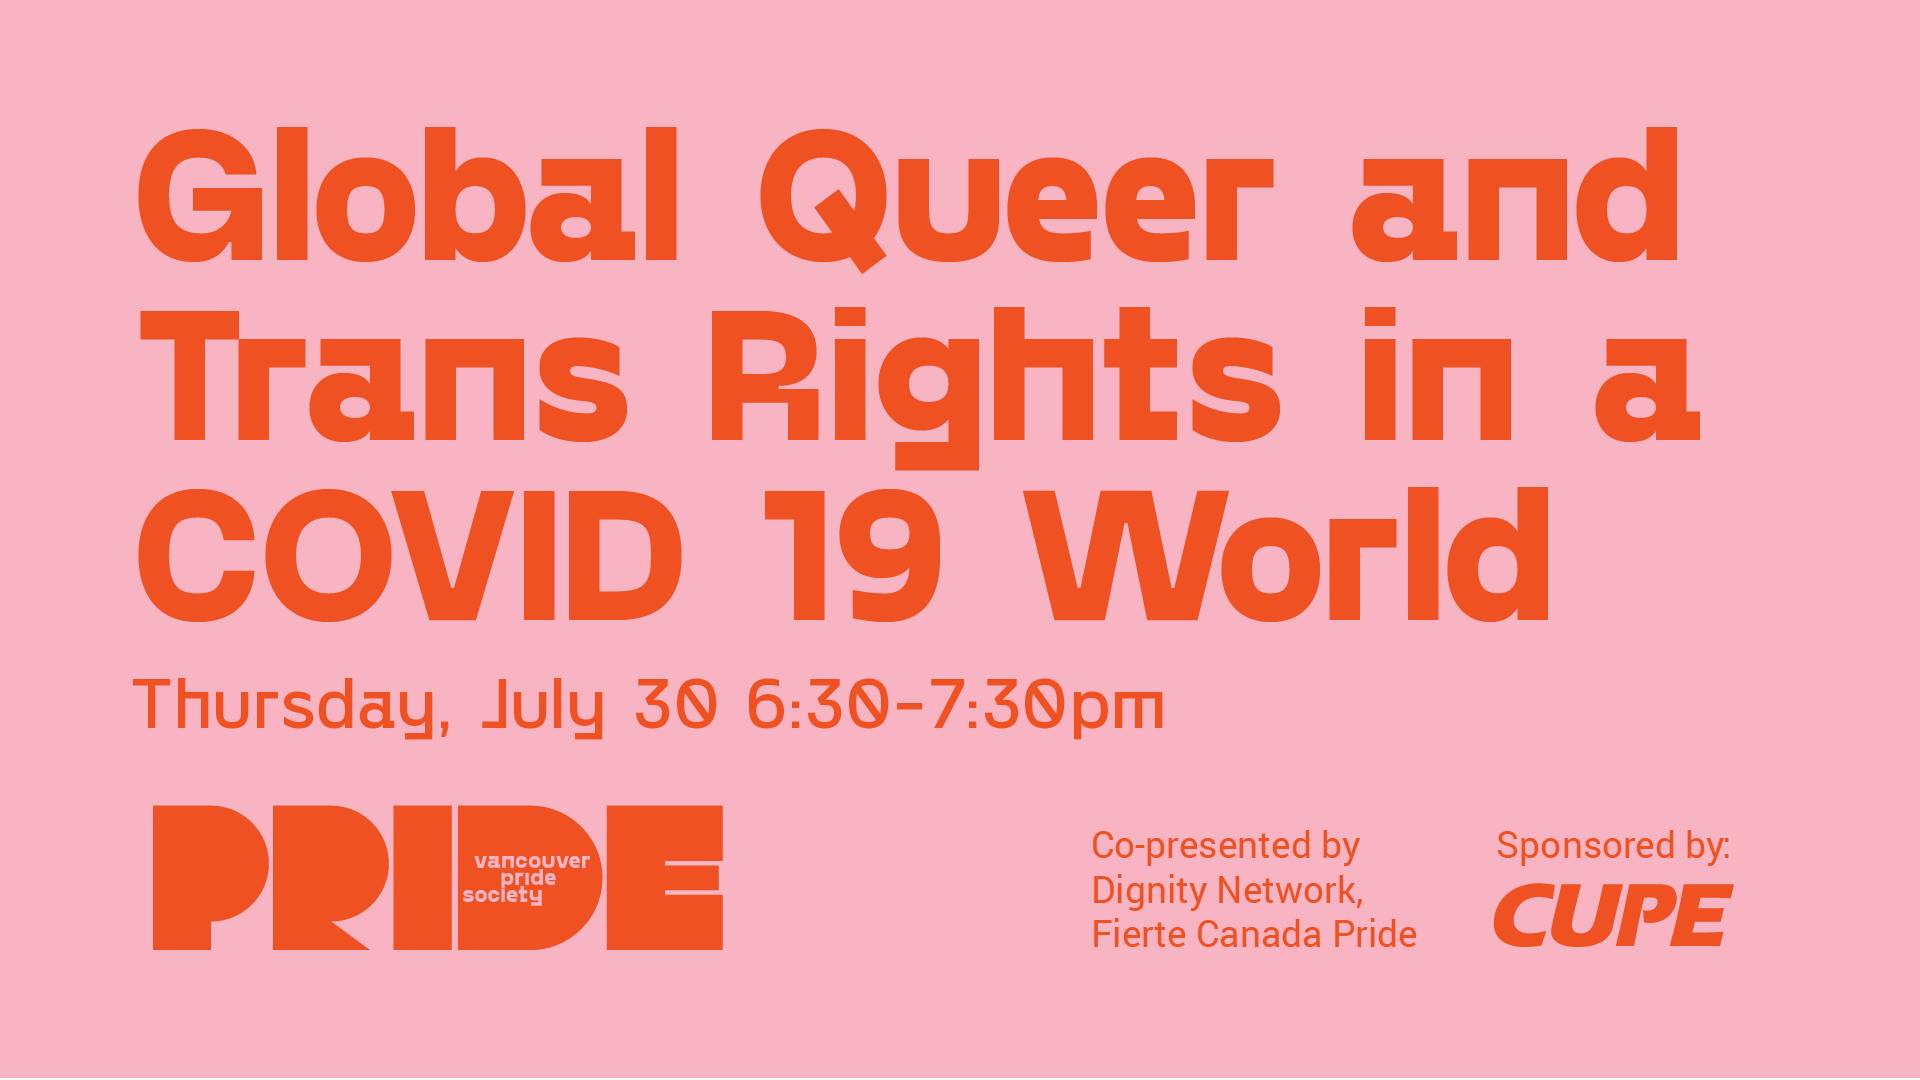 "A light pink background has text in bright orange that reads ""Global Queer and Trans Rights in a COVID 19 World"" smaller text below reads ""Thursday, July 30 6:30-7:30pm"" In the bottom left corner is the Pride logo. Text in the bottom right reads ""Co-presented by Dignity Network, Fierte Canada Pride."" This is adjacent to text reading ""Sponsored by"" followed by the CUPE logo."